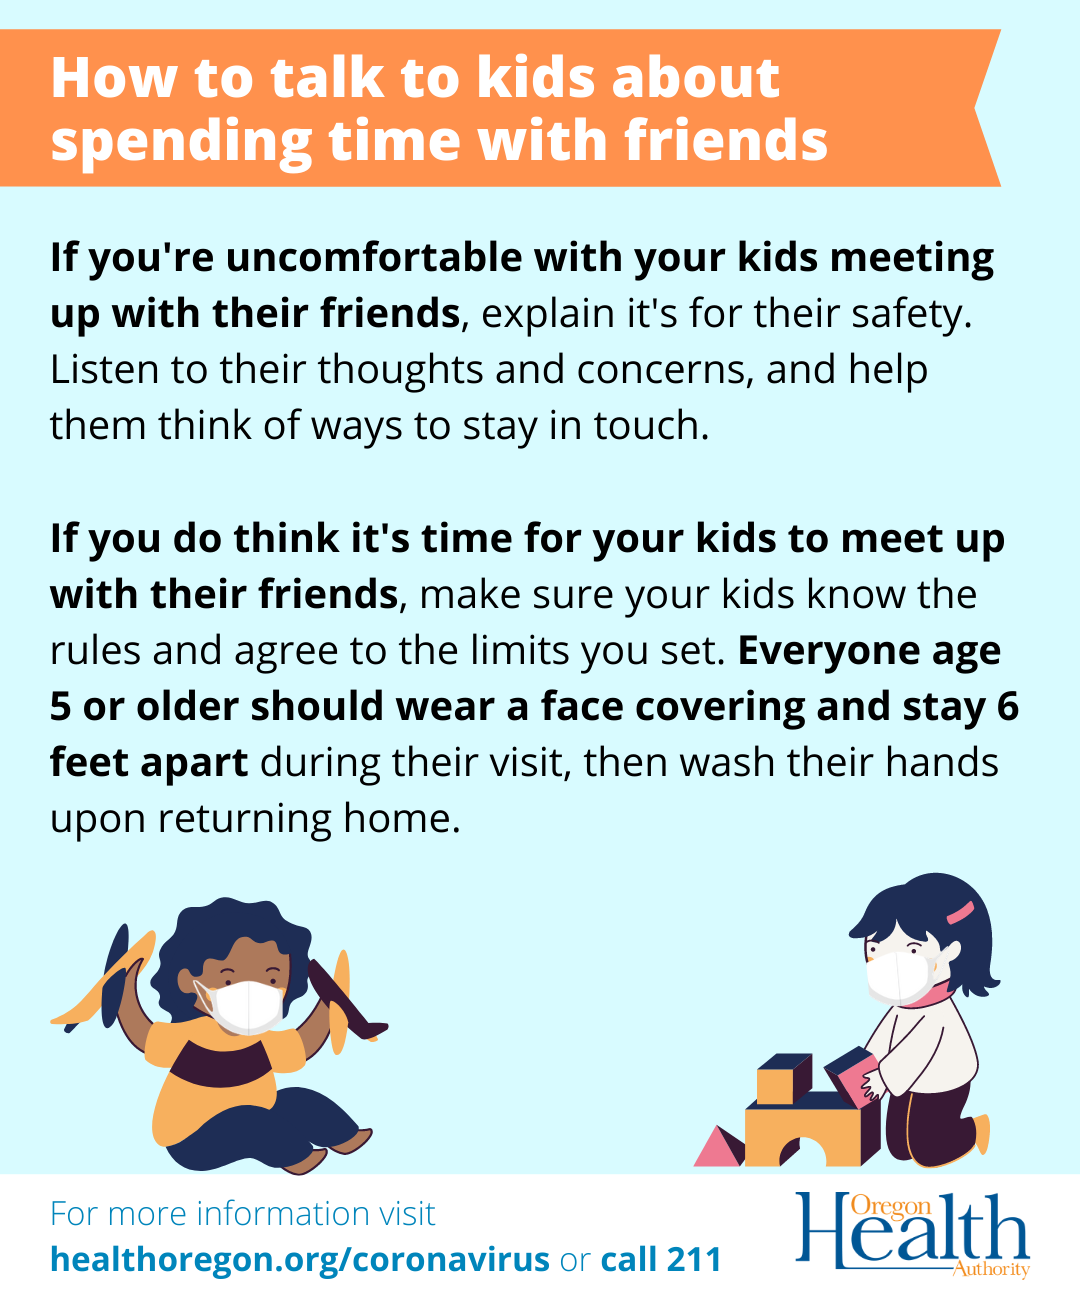 How to talk to kids about spending time with friends